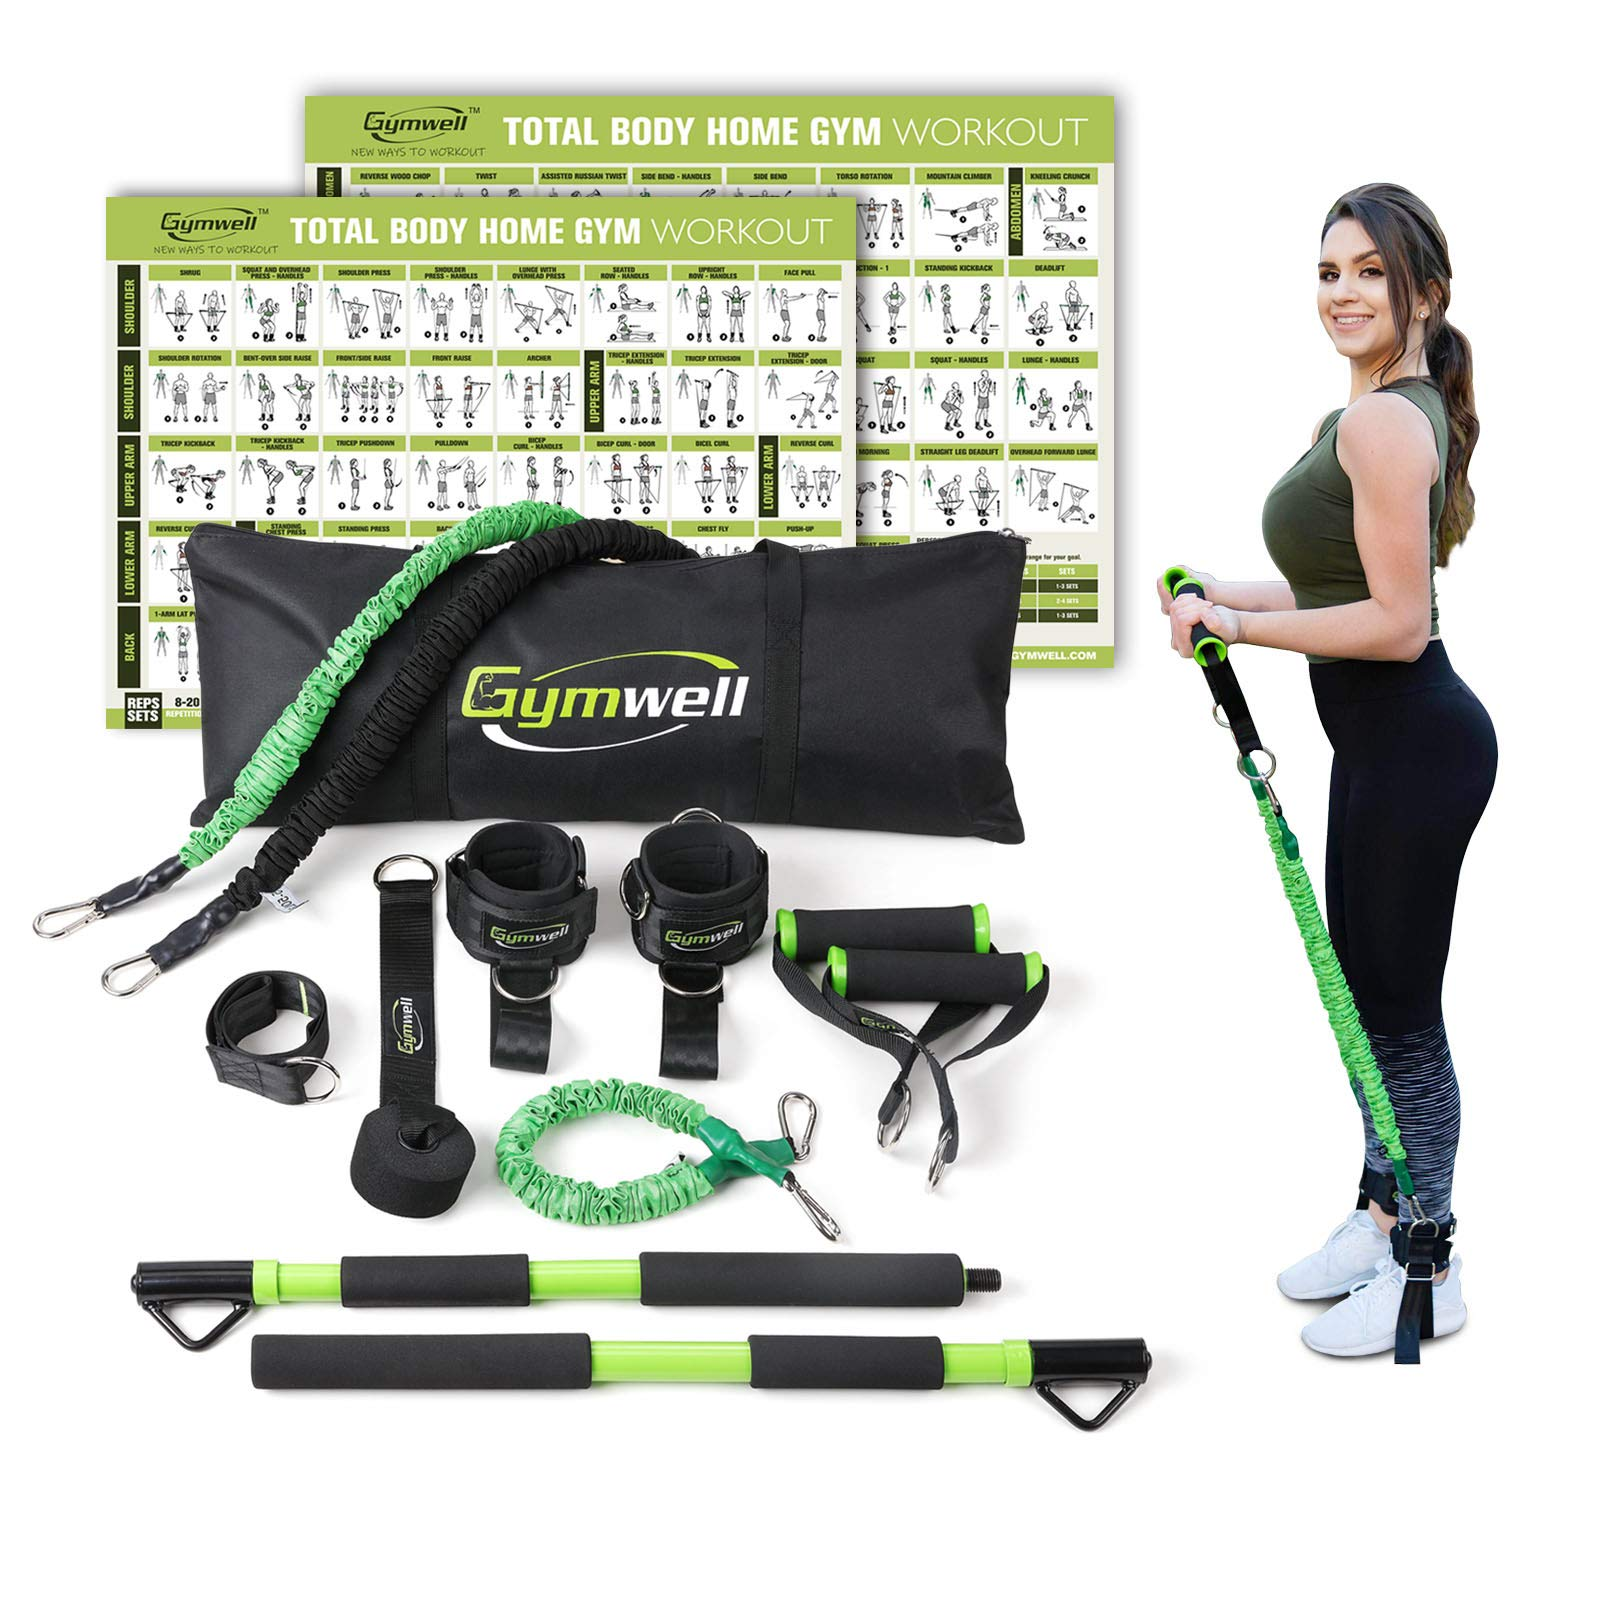 Gymwell Portable Resistance Workout Set, Total Body Workout Equipment for Home, Office or Outdoor with 3 Sets of Resistance Bands (Green - Full Gym) by Gymwell (Image #1)